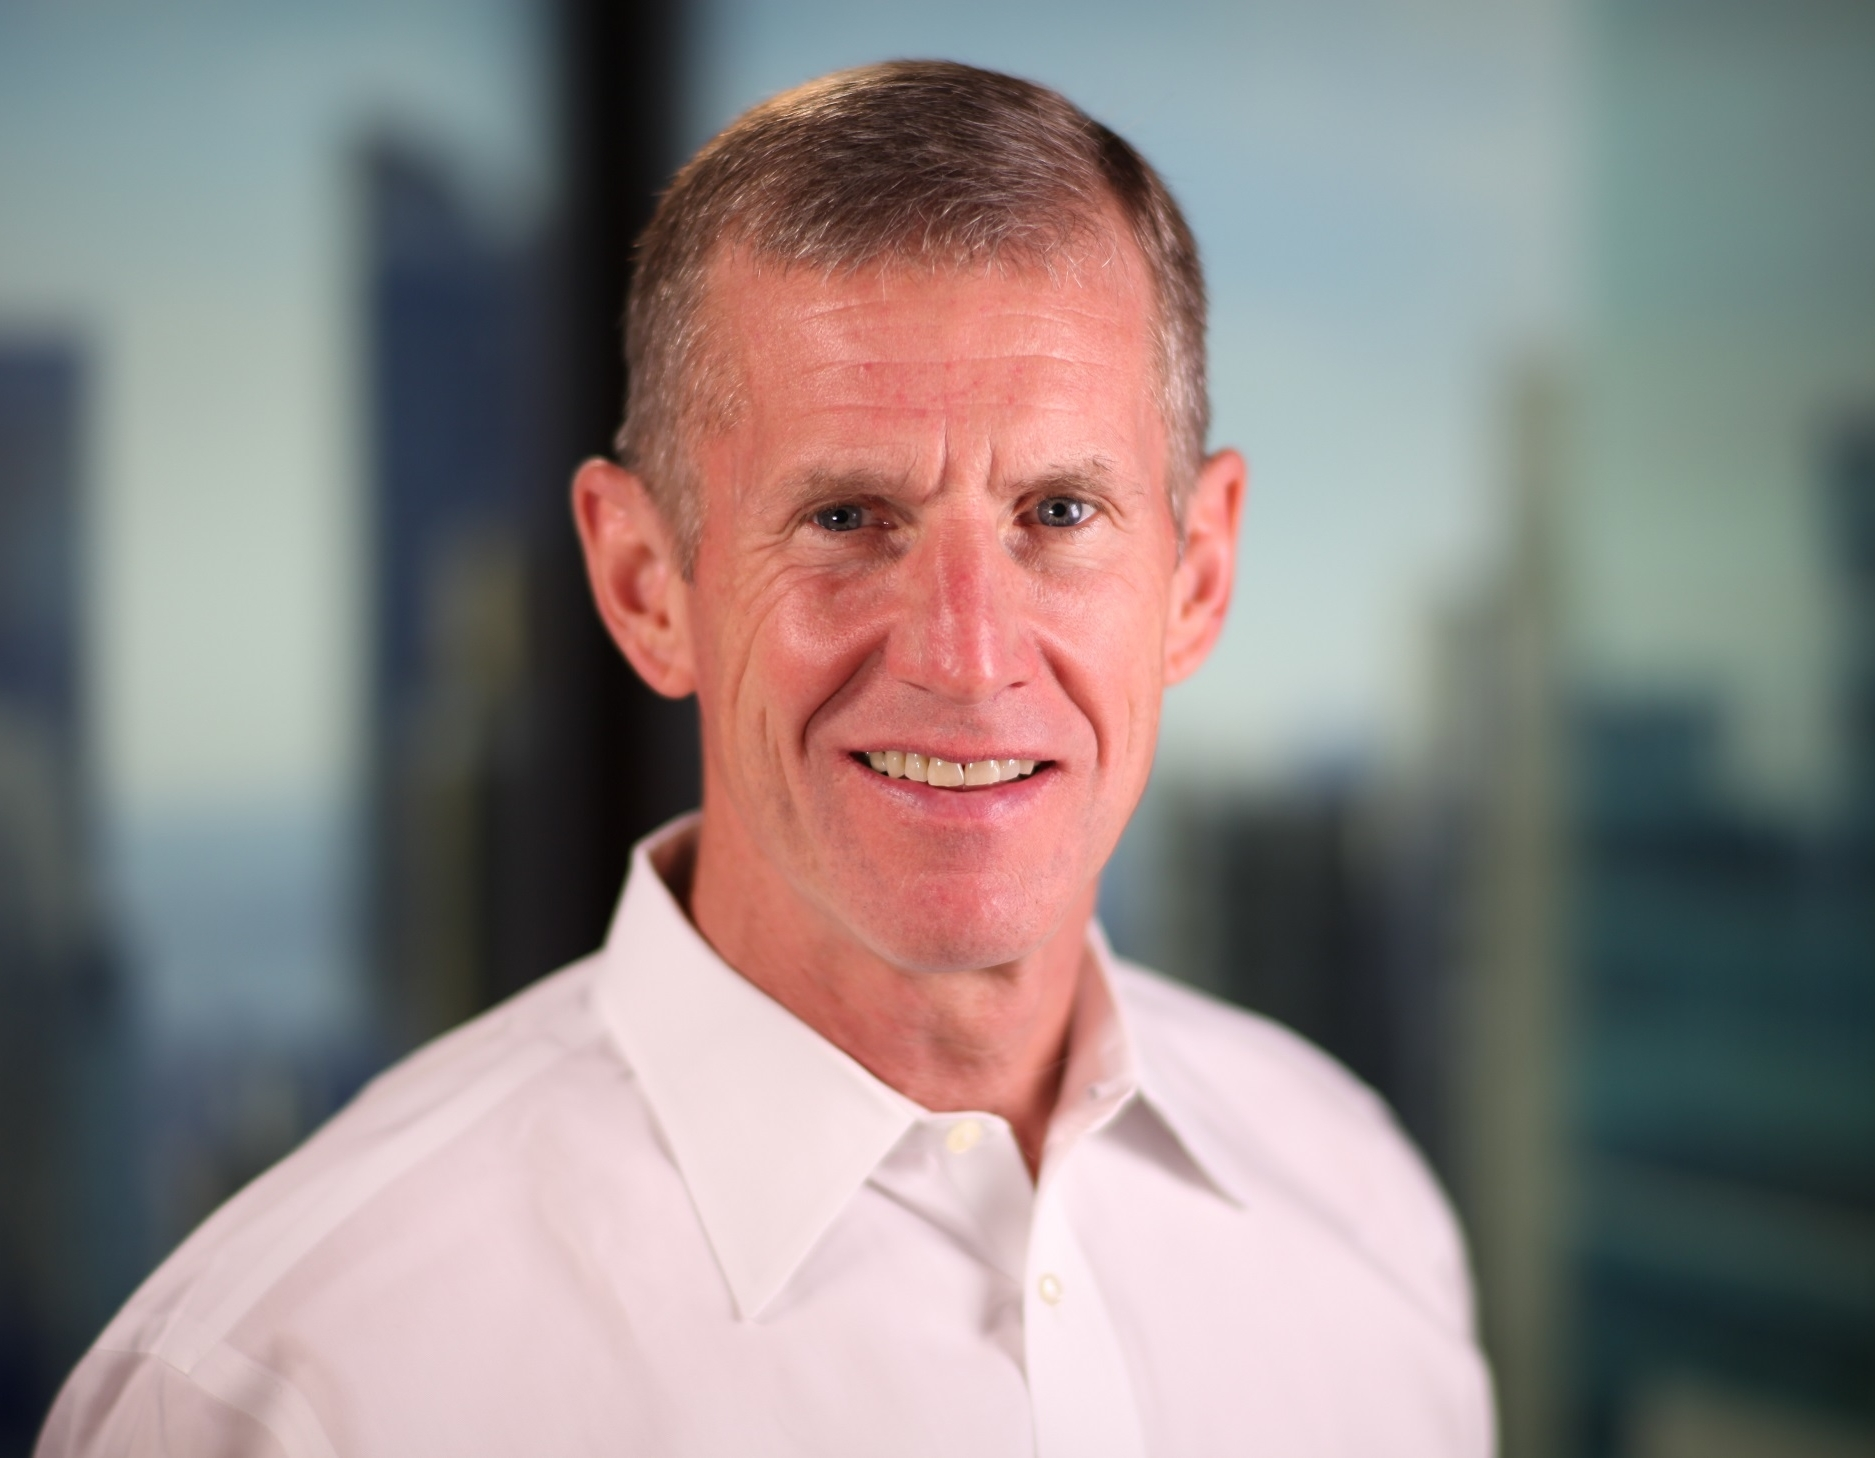 Episode 15 – Part 2: Leadership Lessons From A Four-Star General – Featuring: Stanley McChrystal